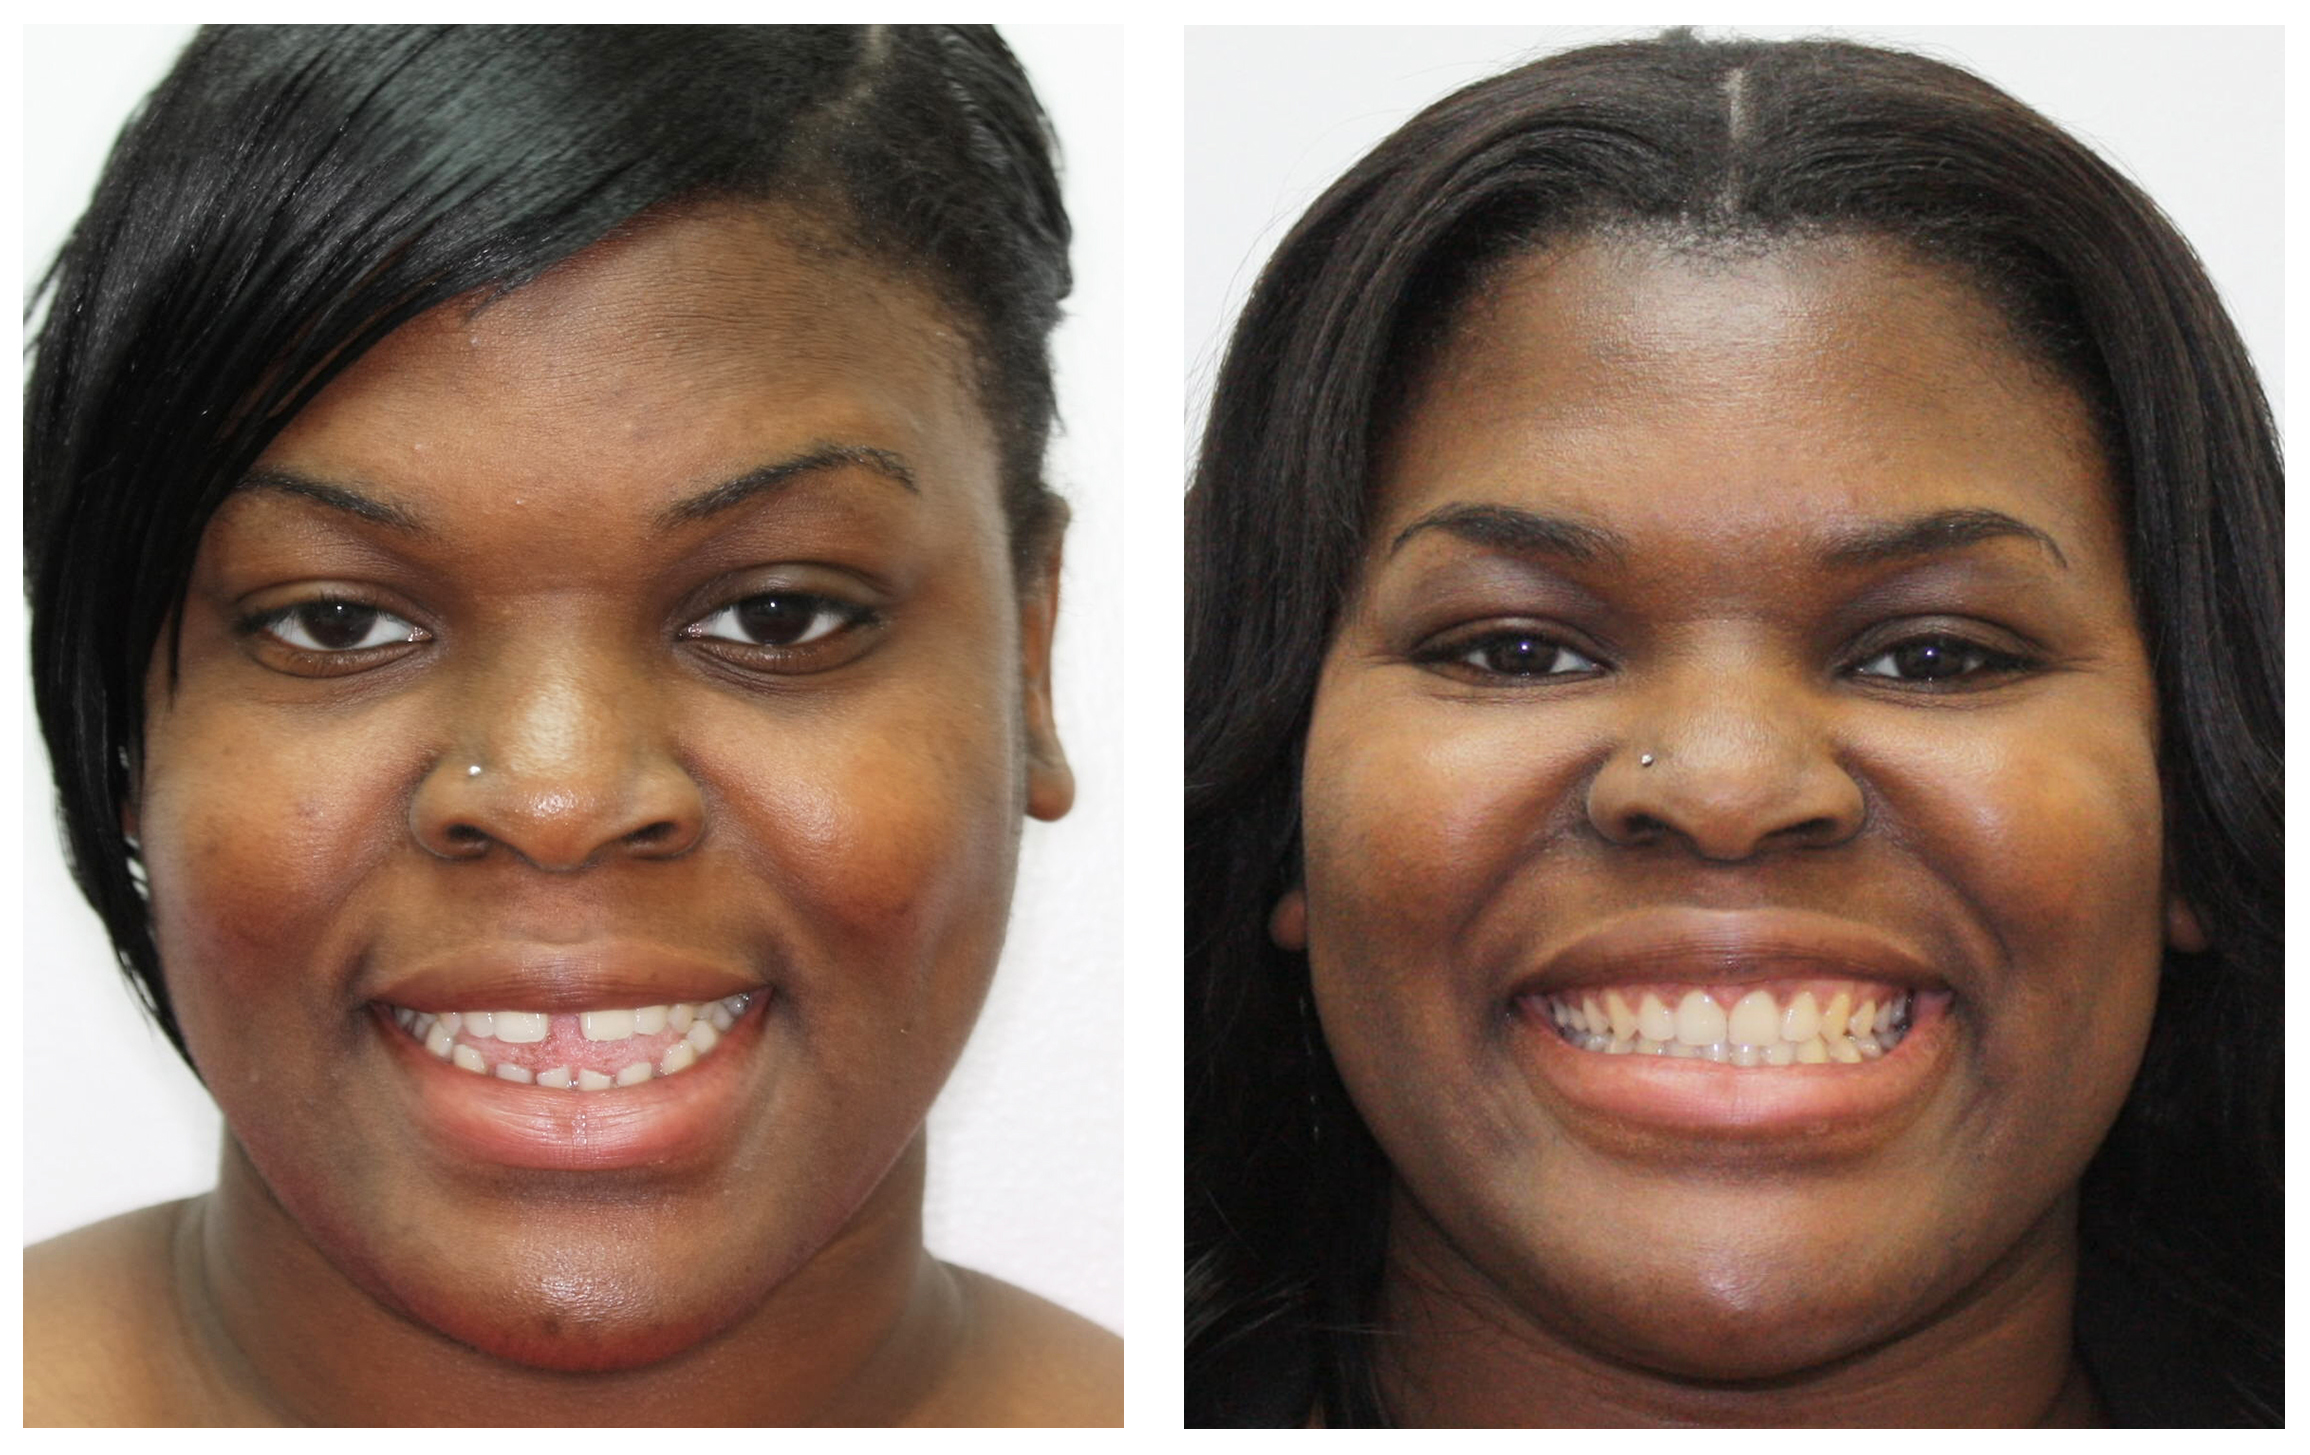 Adult woman 2 extraoral before & after Invisalign